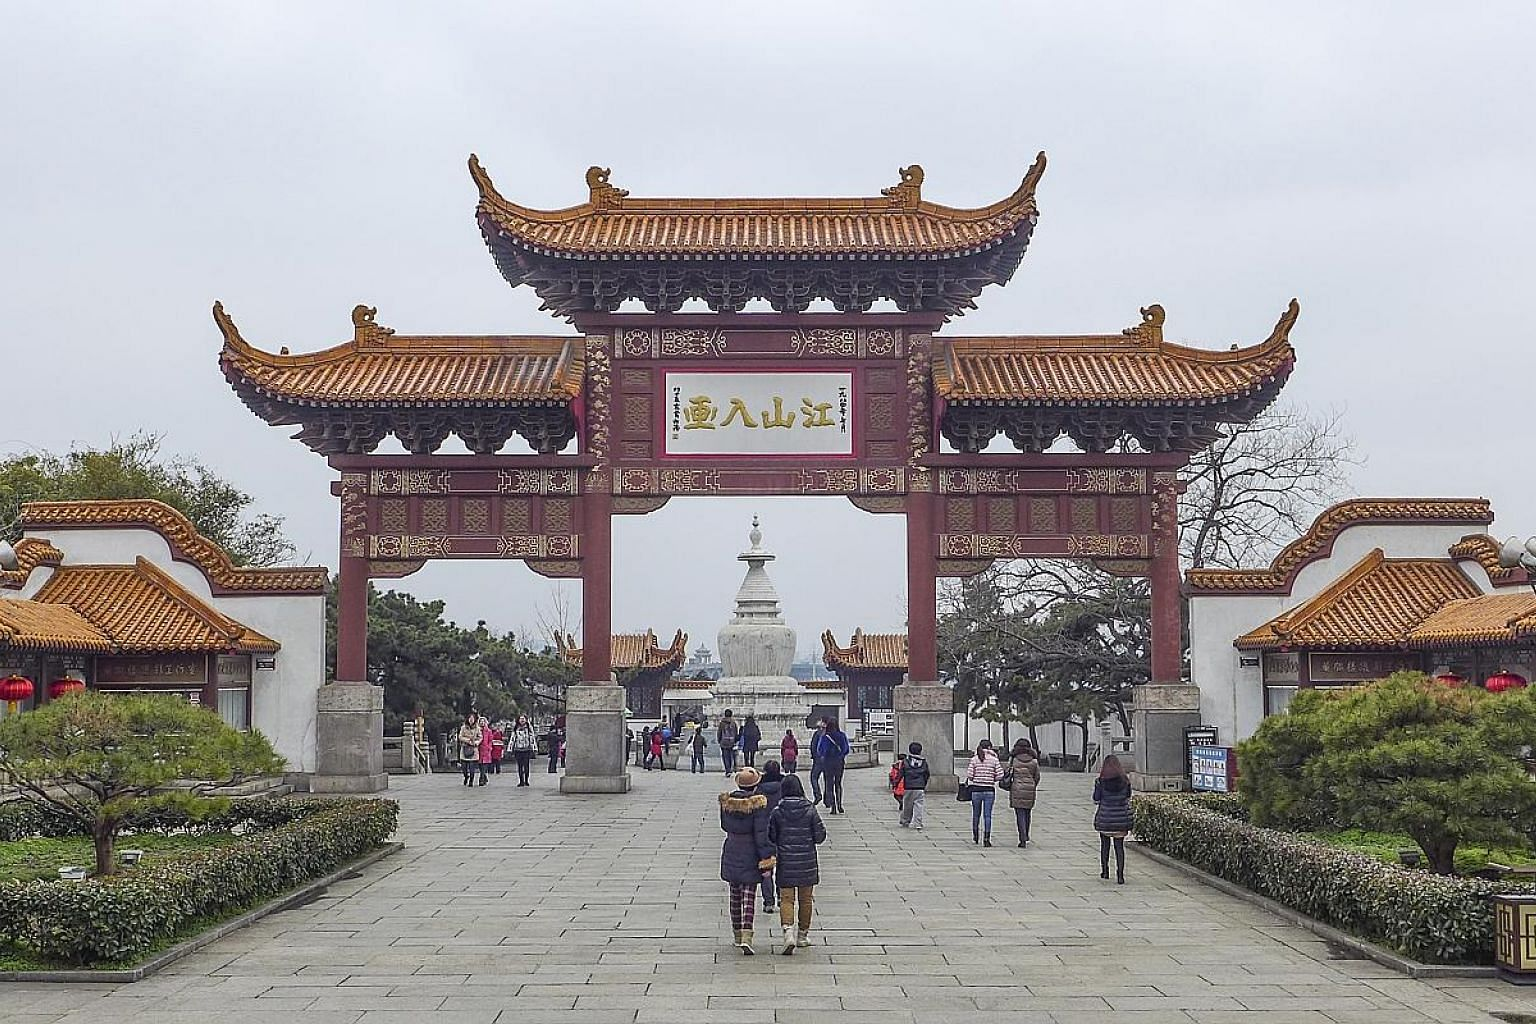 The grand entrance (above) to the Yellow Crane Tower. The complex also has other architecture, such as a red pagoda that houses a giant bell.